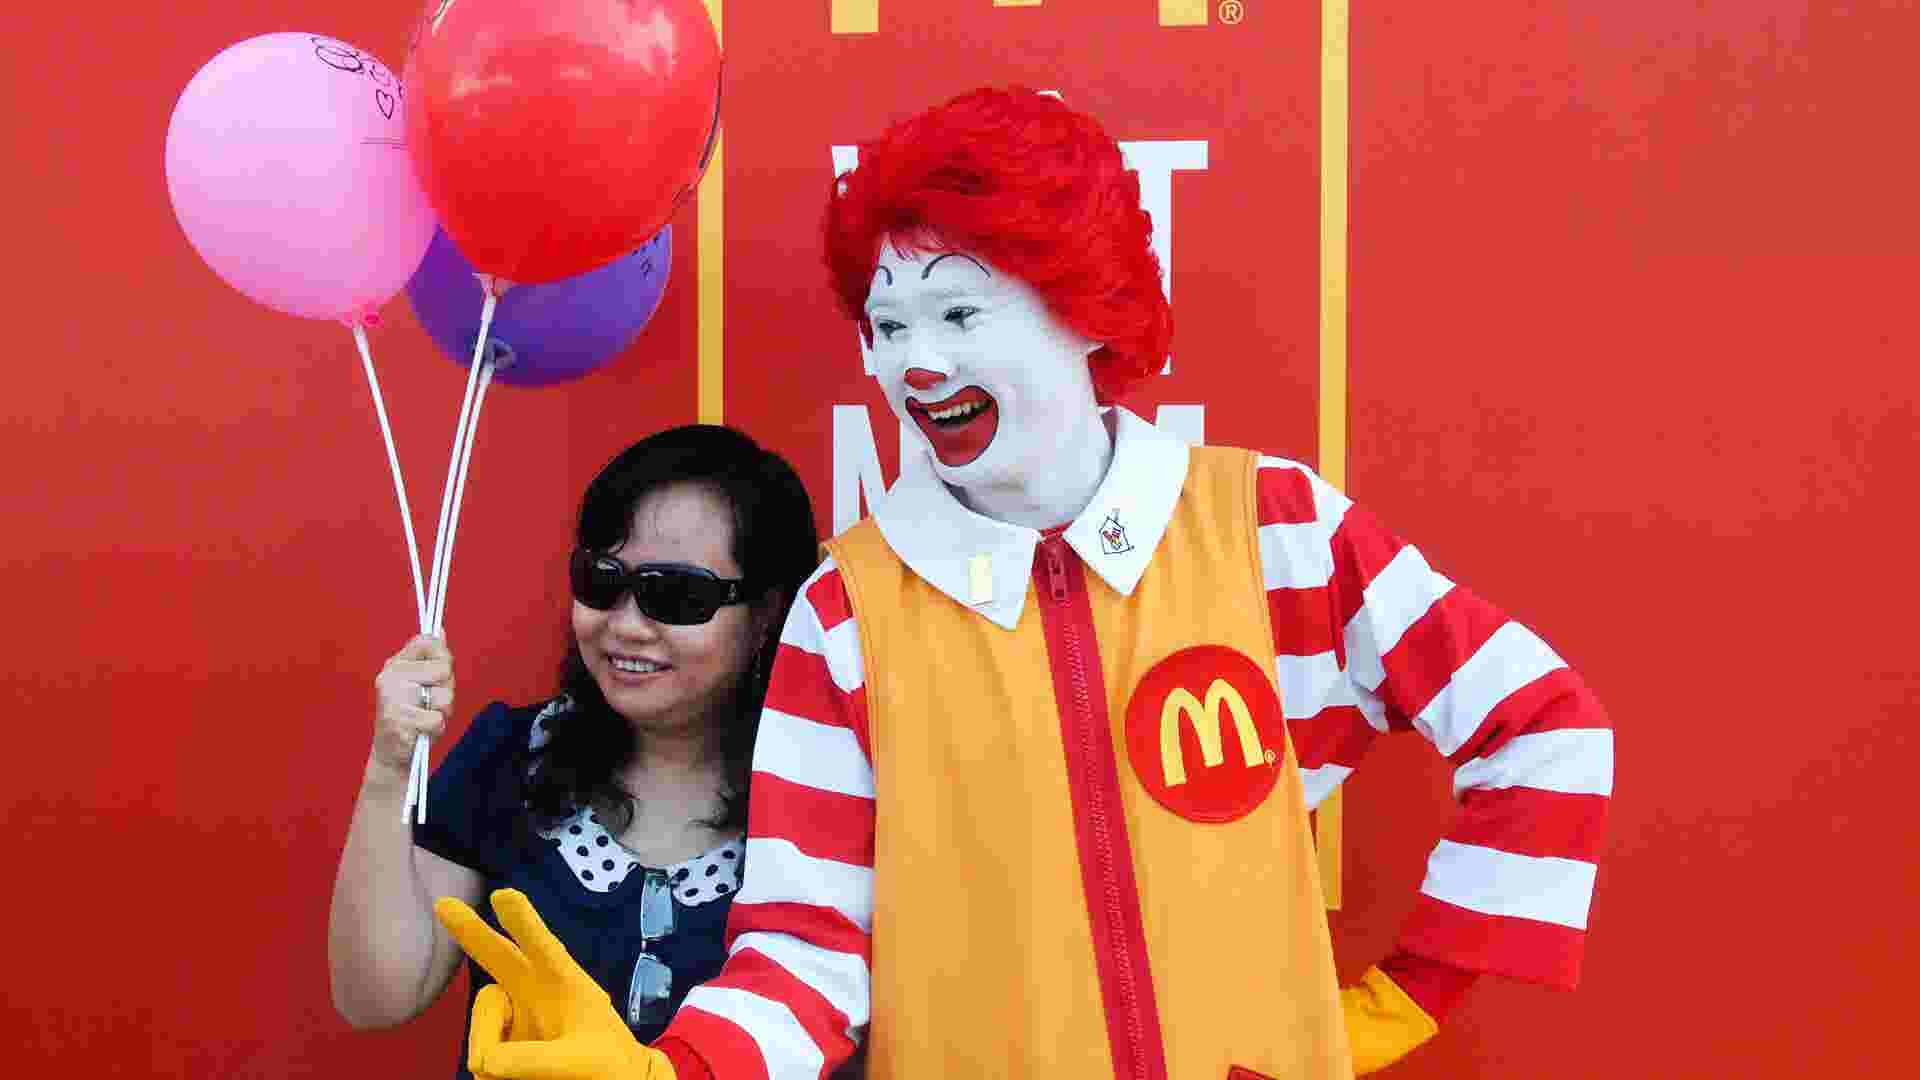 McDonald's booms abroad, sags at home | Monday Money